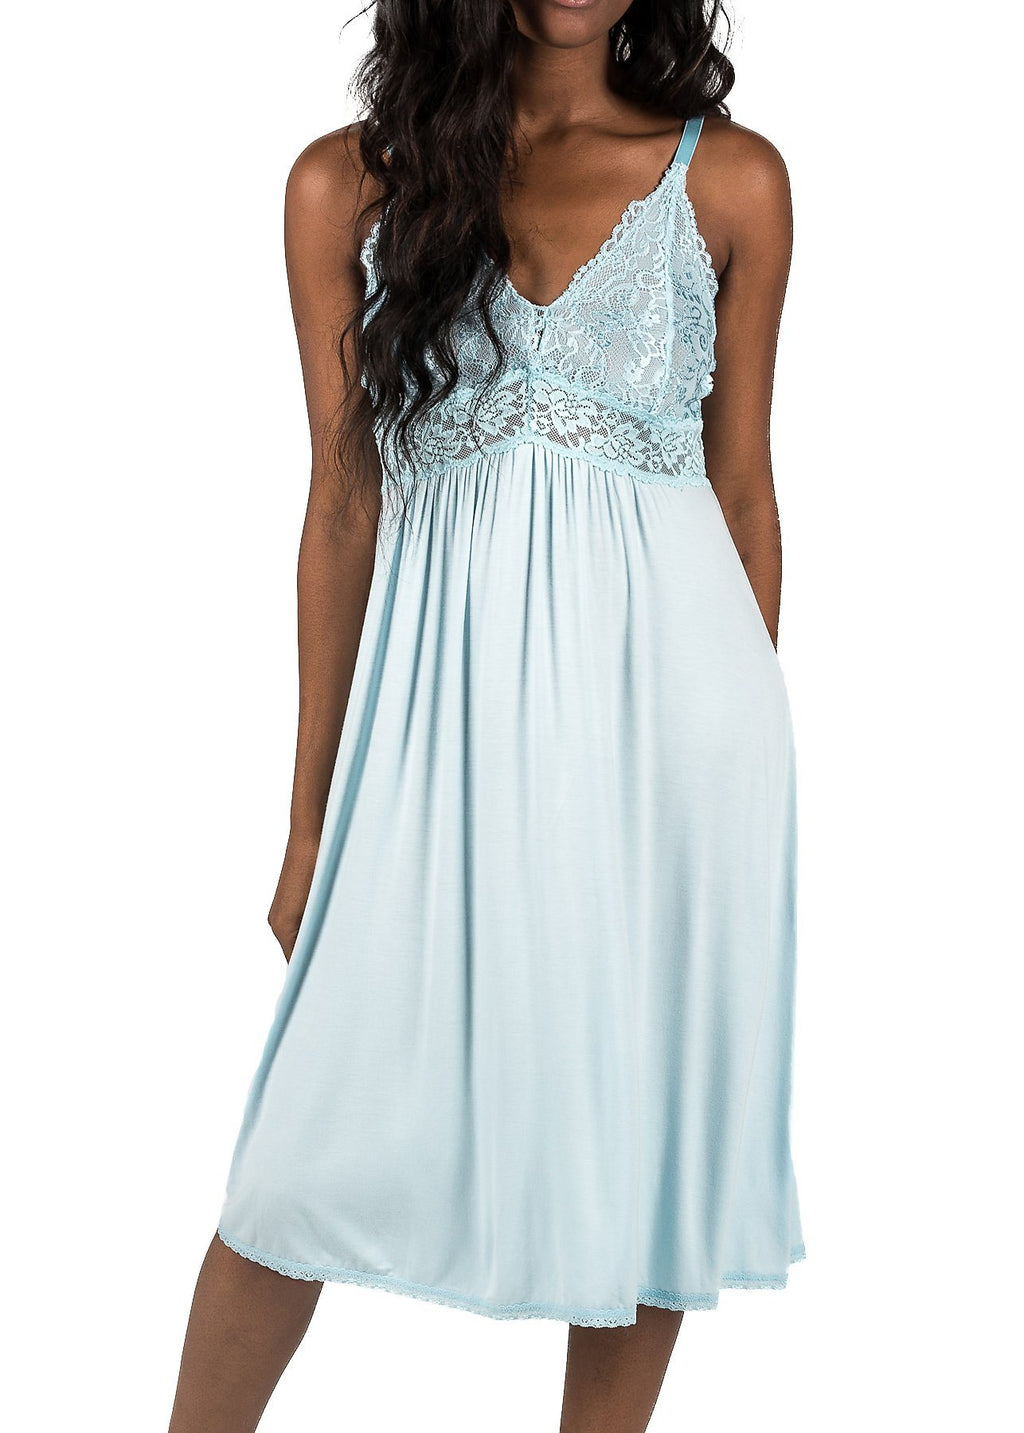 Bliss Nightgown - Starlight Blue Mystique Intimates